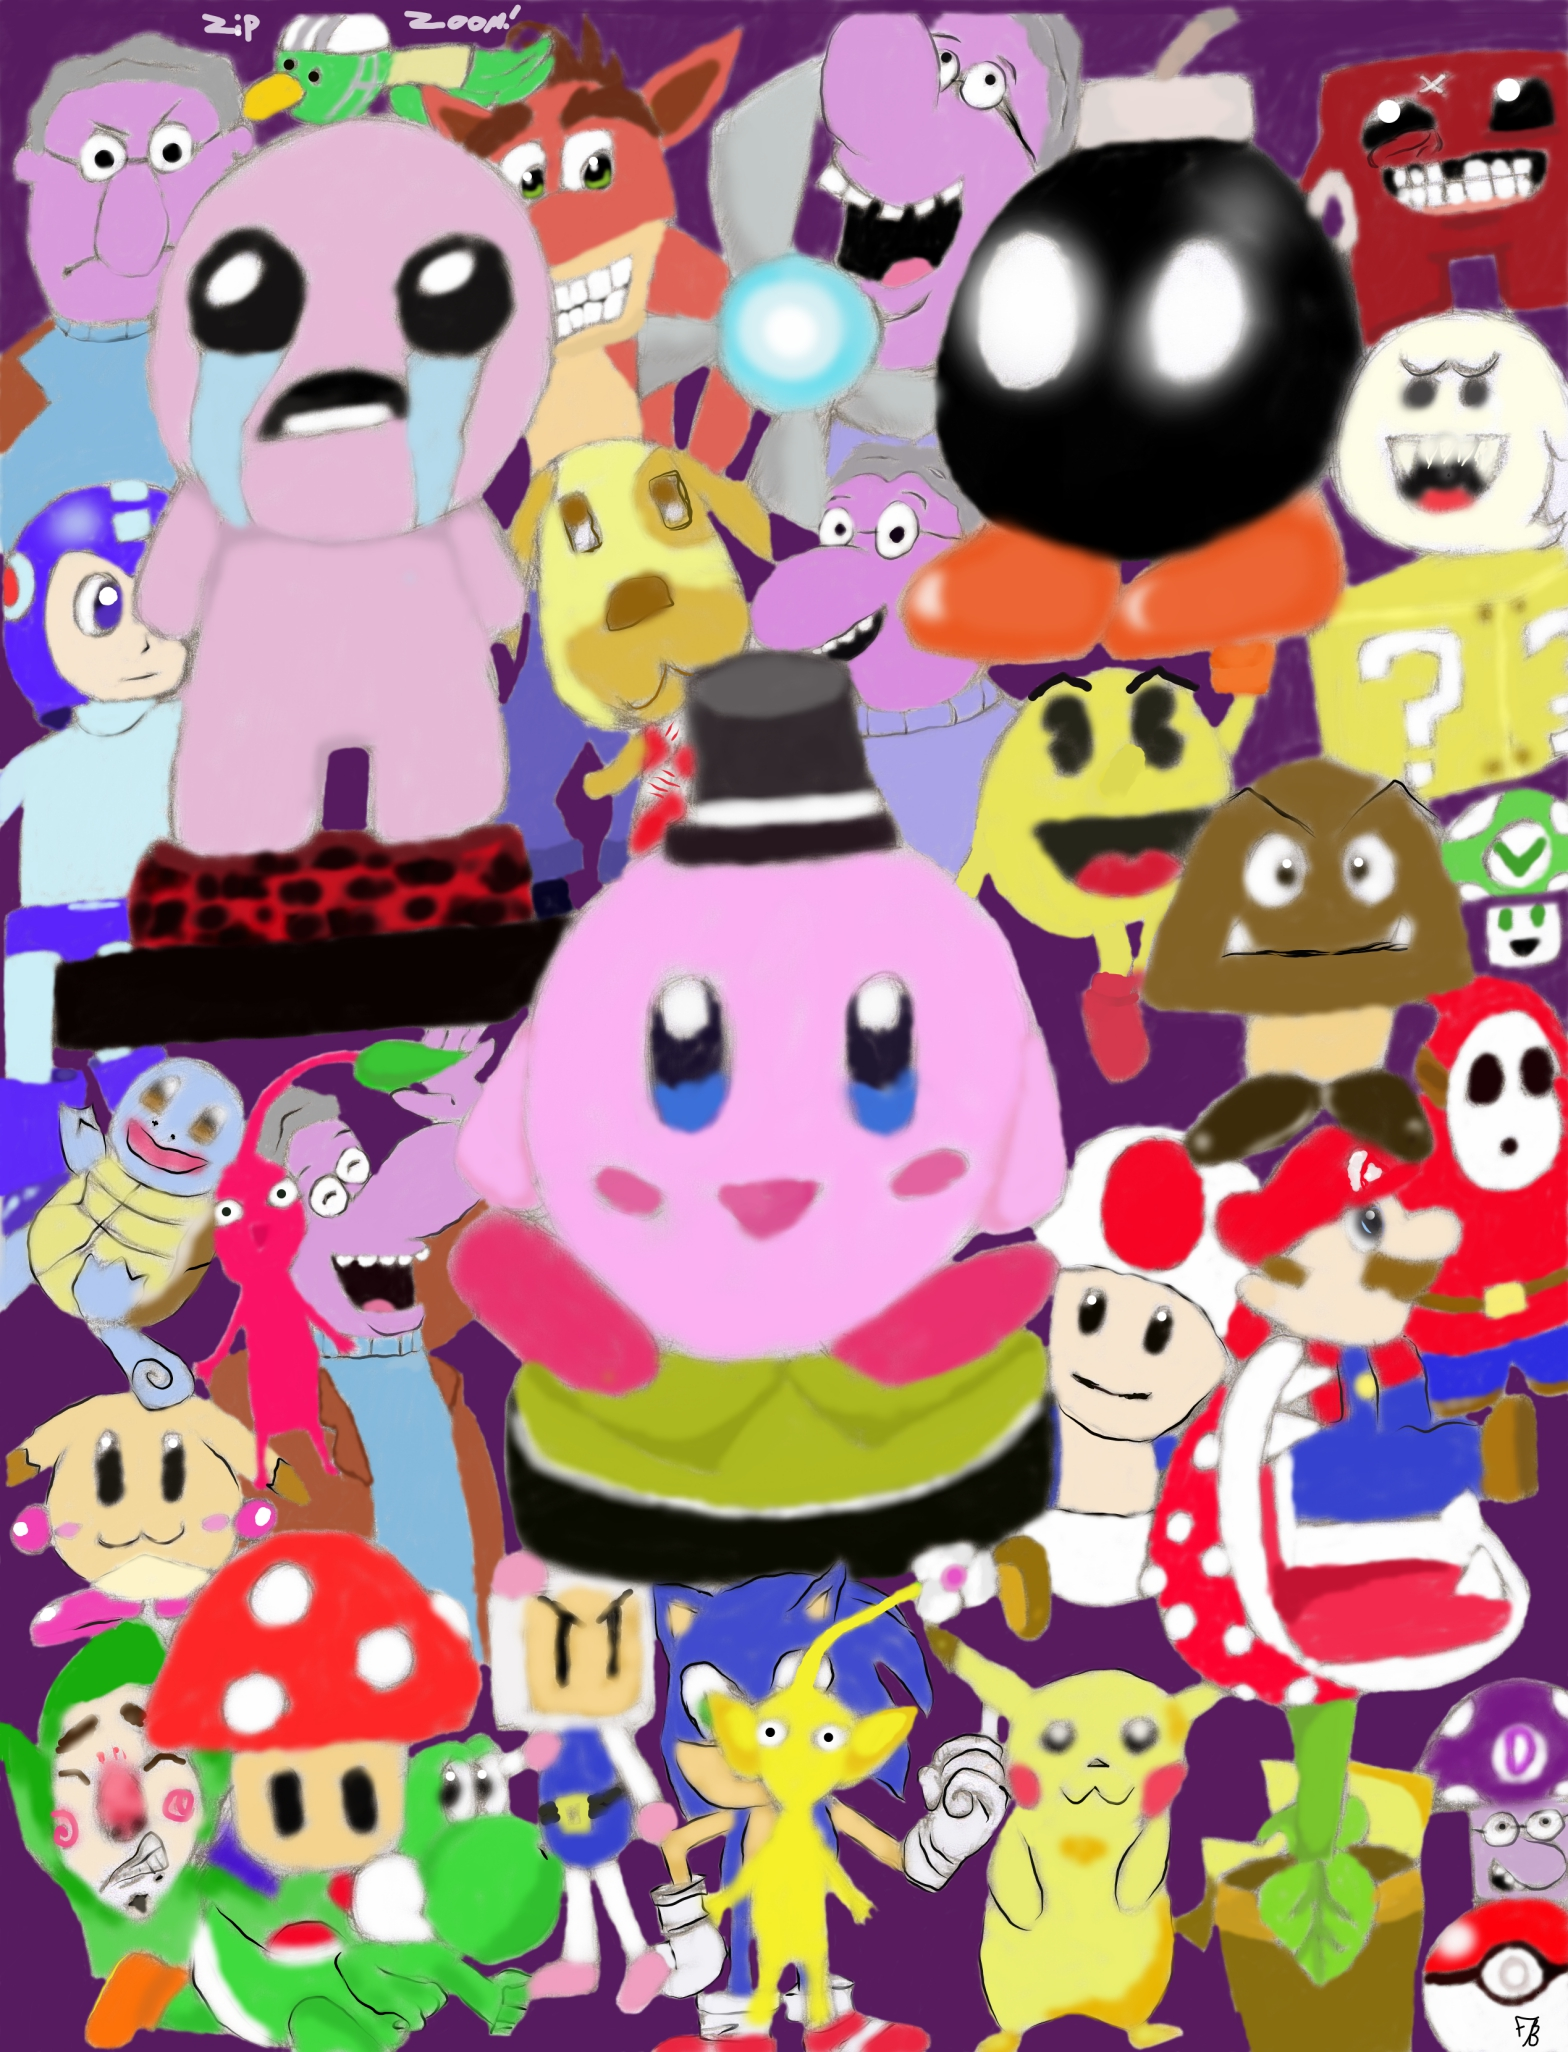 game collage